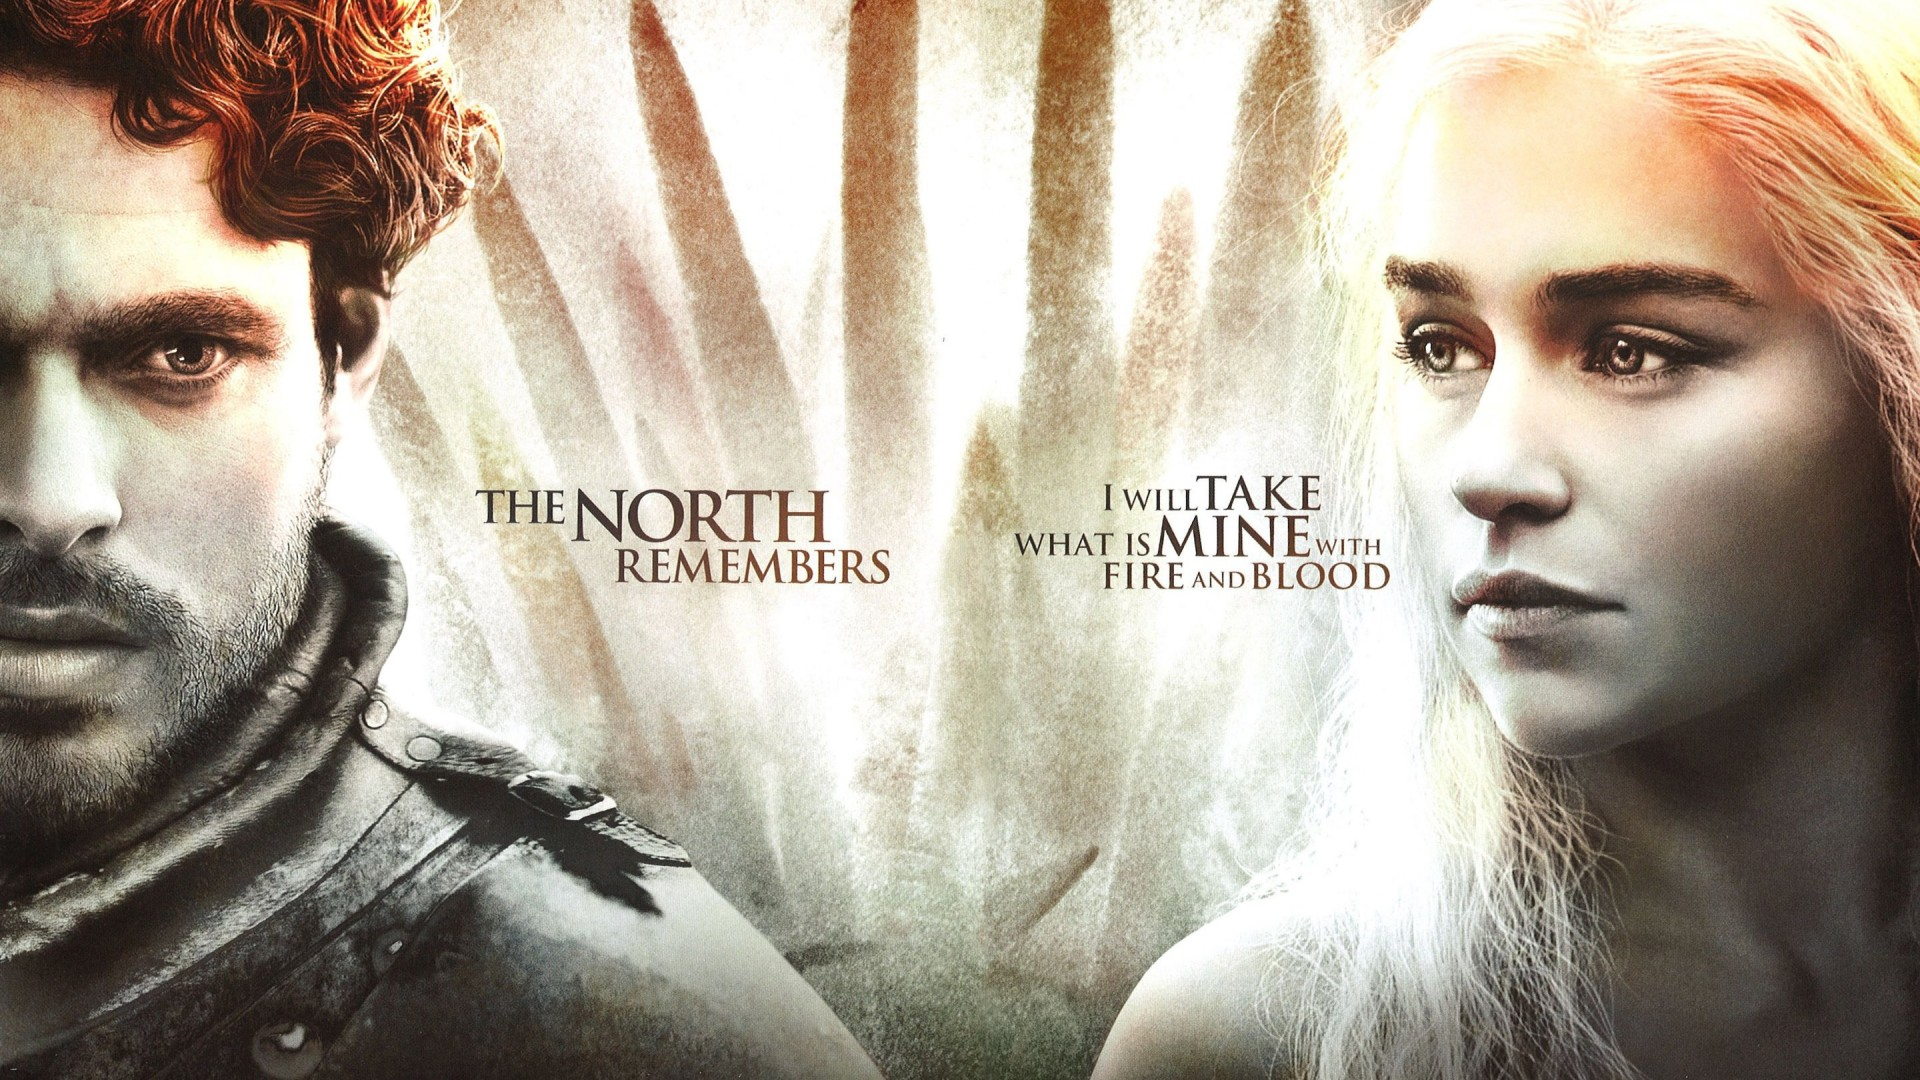 Game Of Thrones Season 4 Wallpaper for Desktop 1920x1080